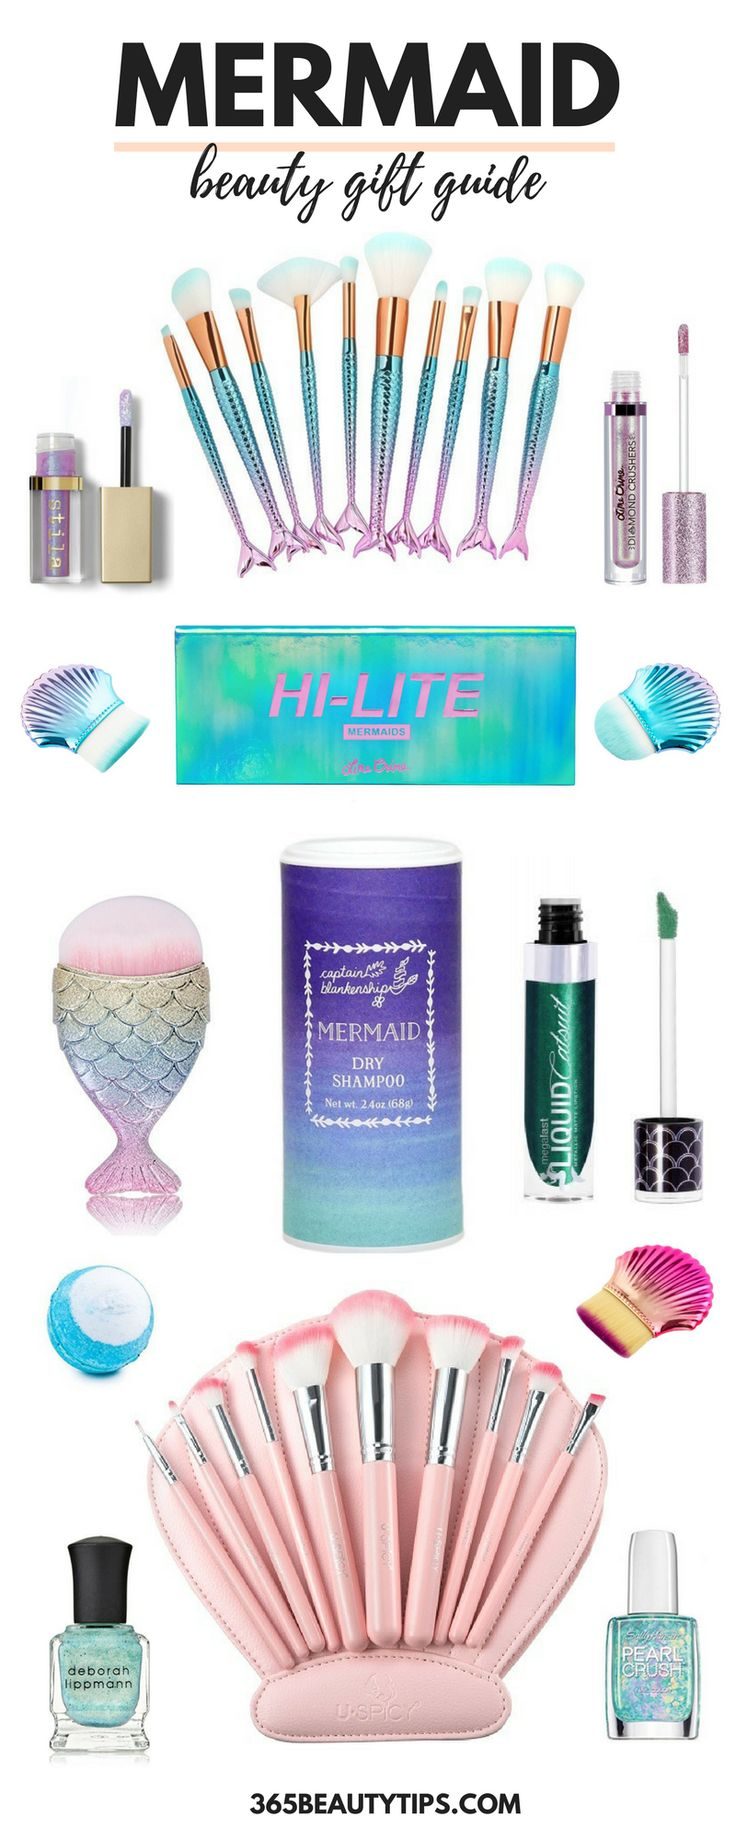 #mermaid #mermaidbeauty #giftguide #mermaidmakeup #beautygift #makeup #giftsforher